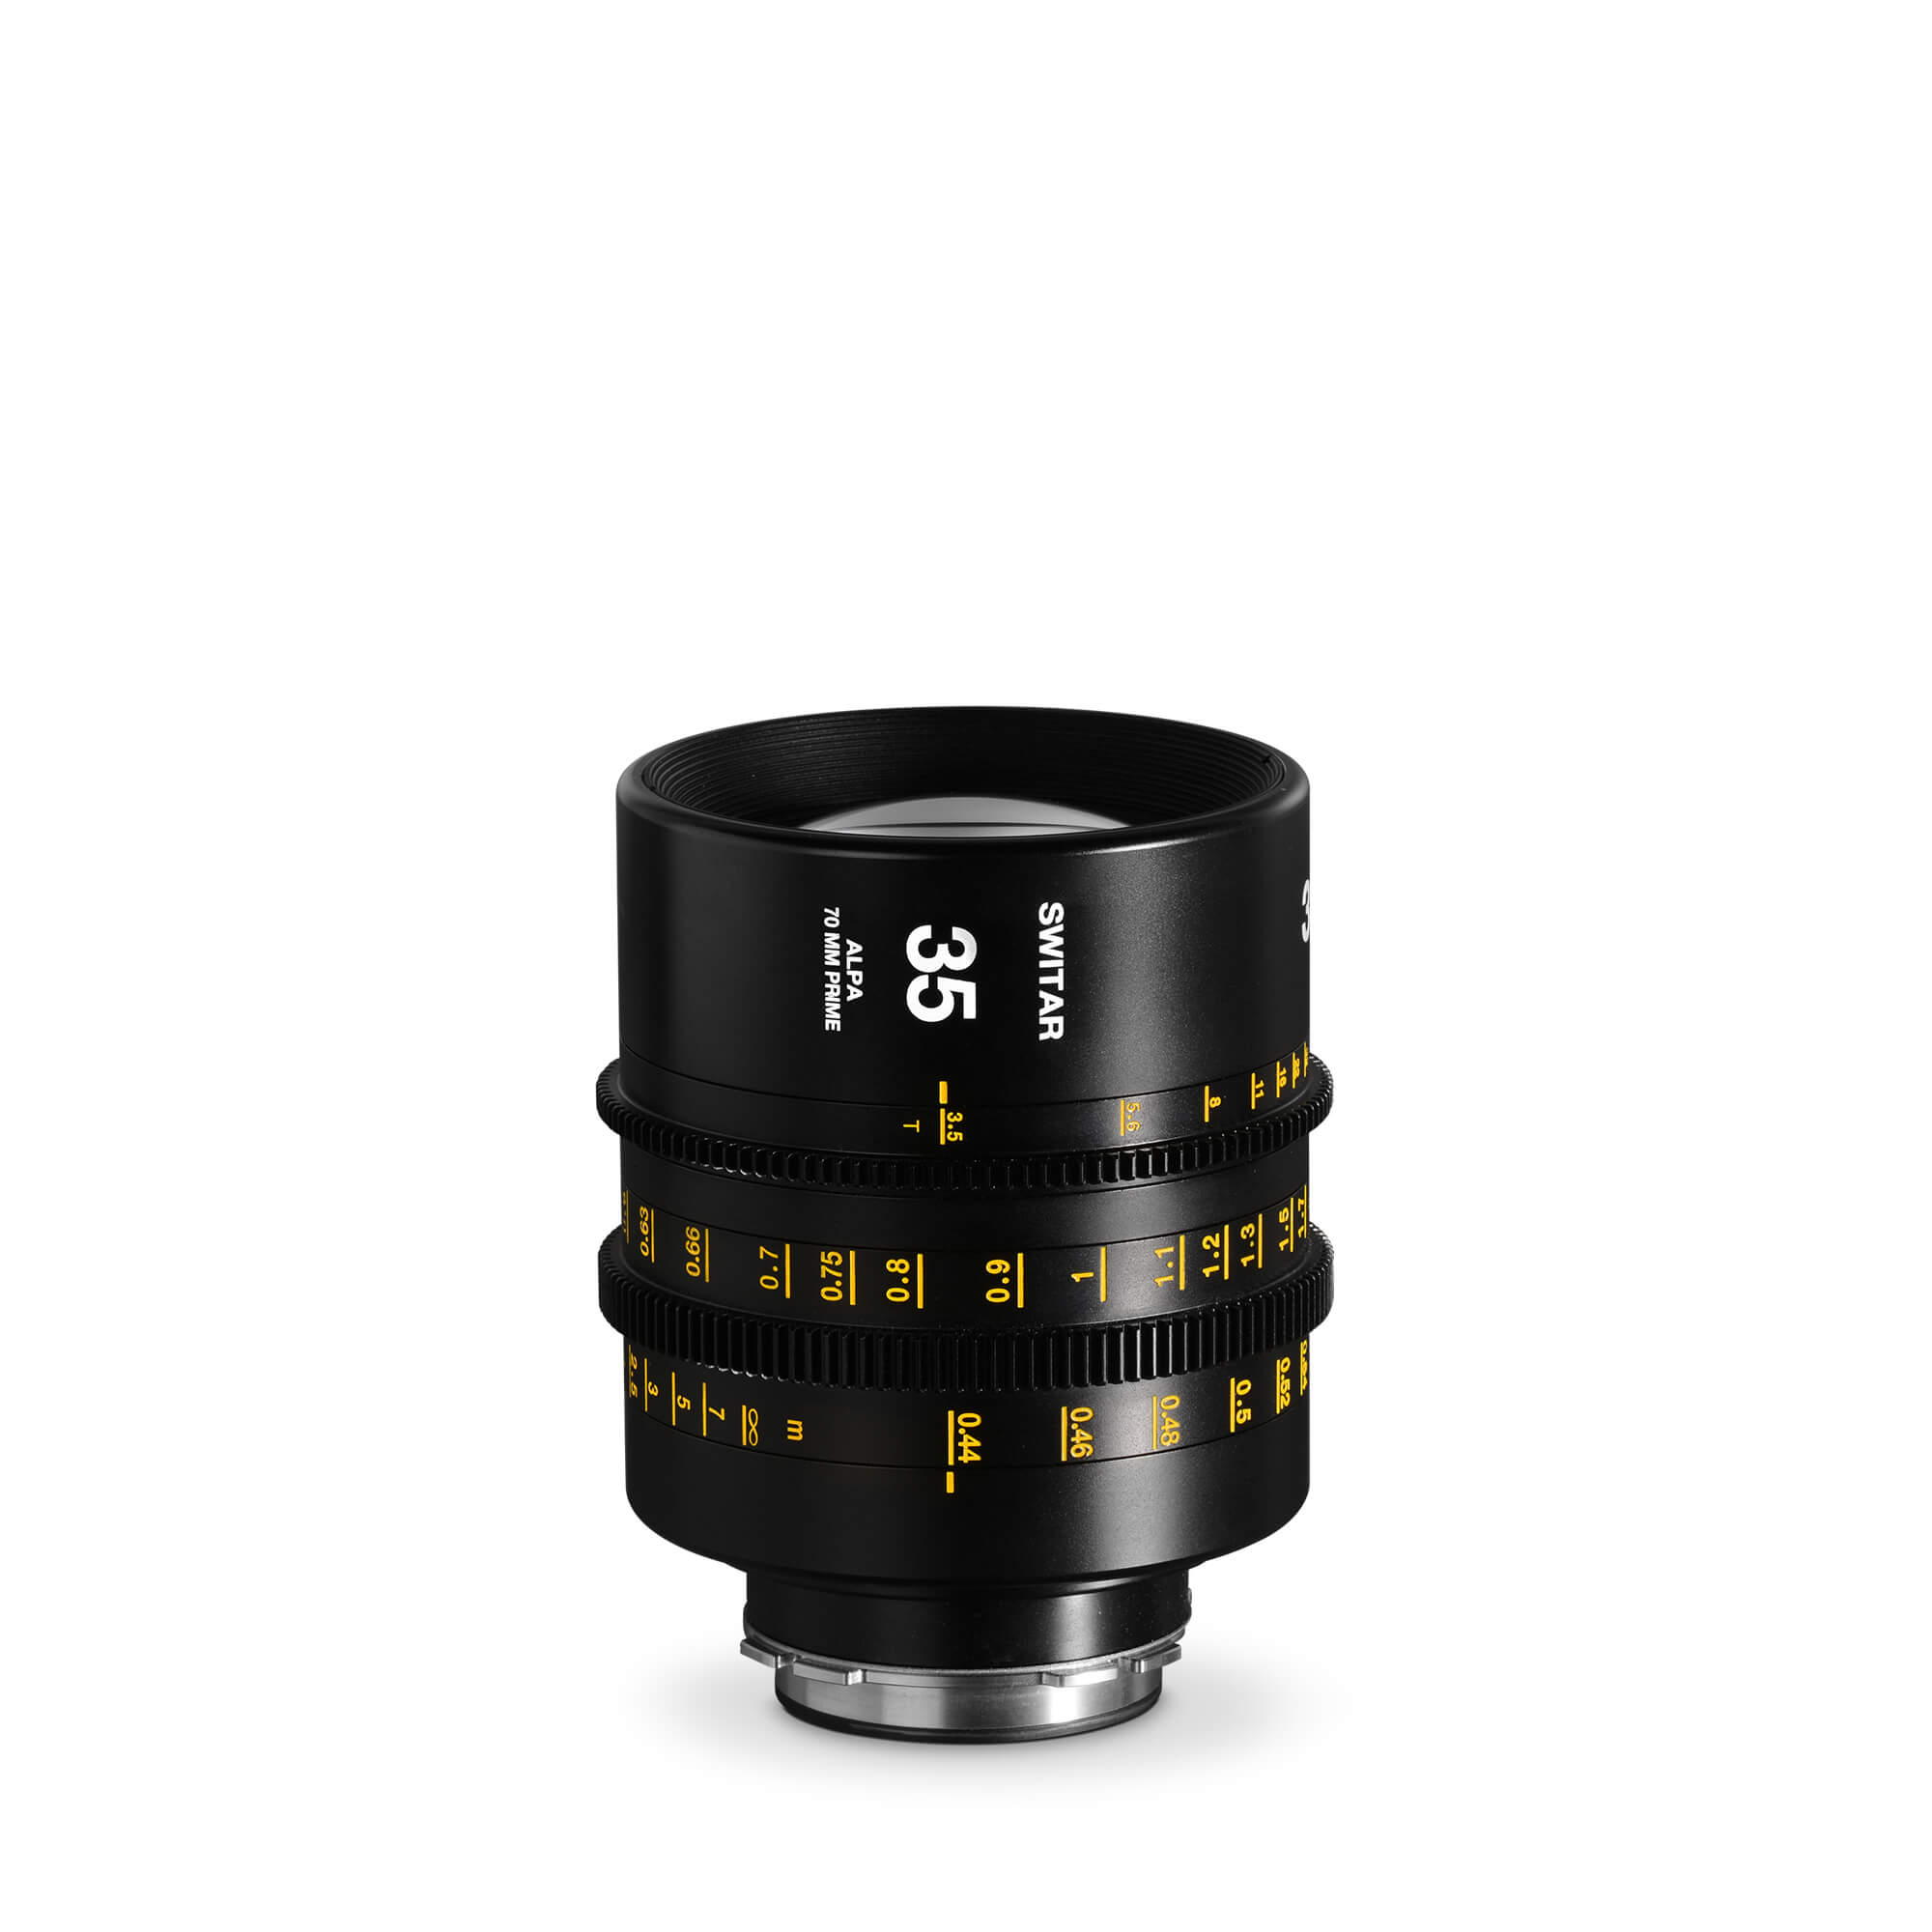 ALPA Switar 3.5/35 mm Cine Prime IC 70 mm - feet